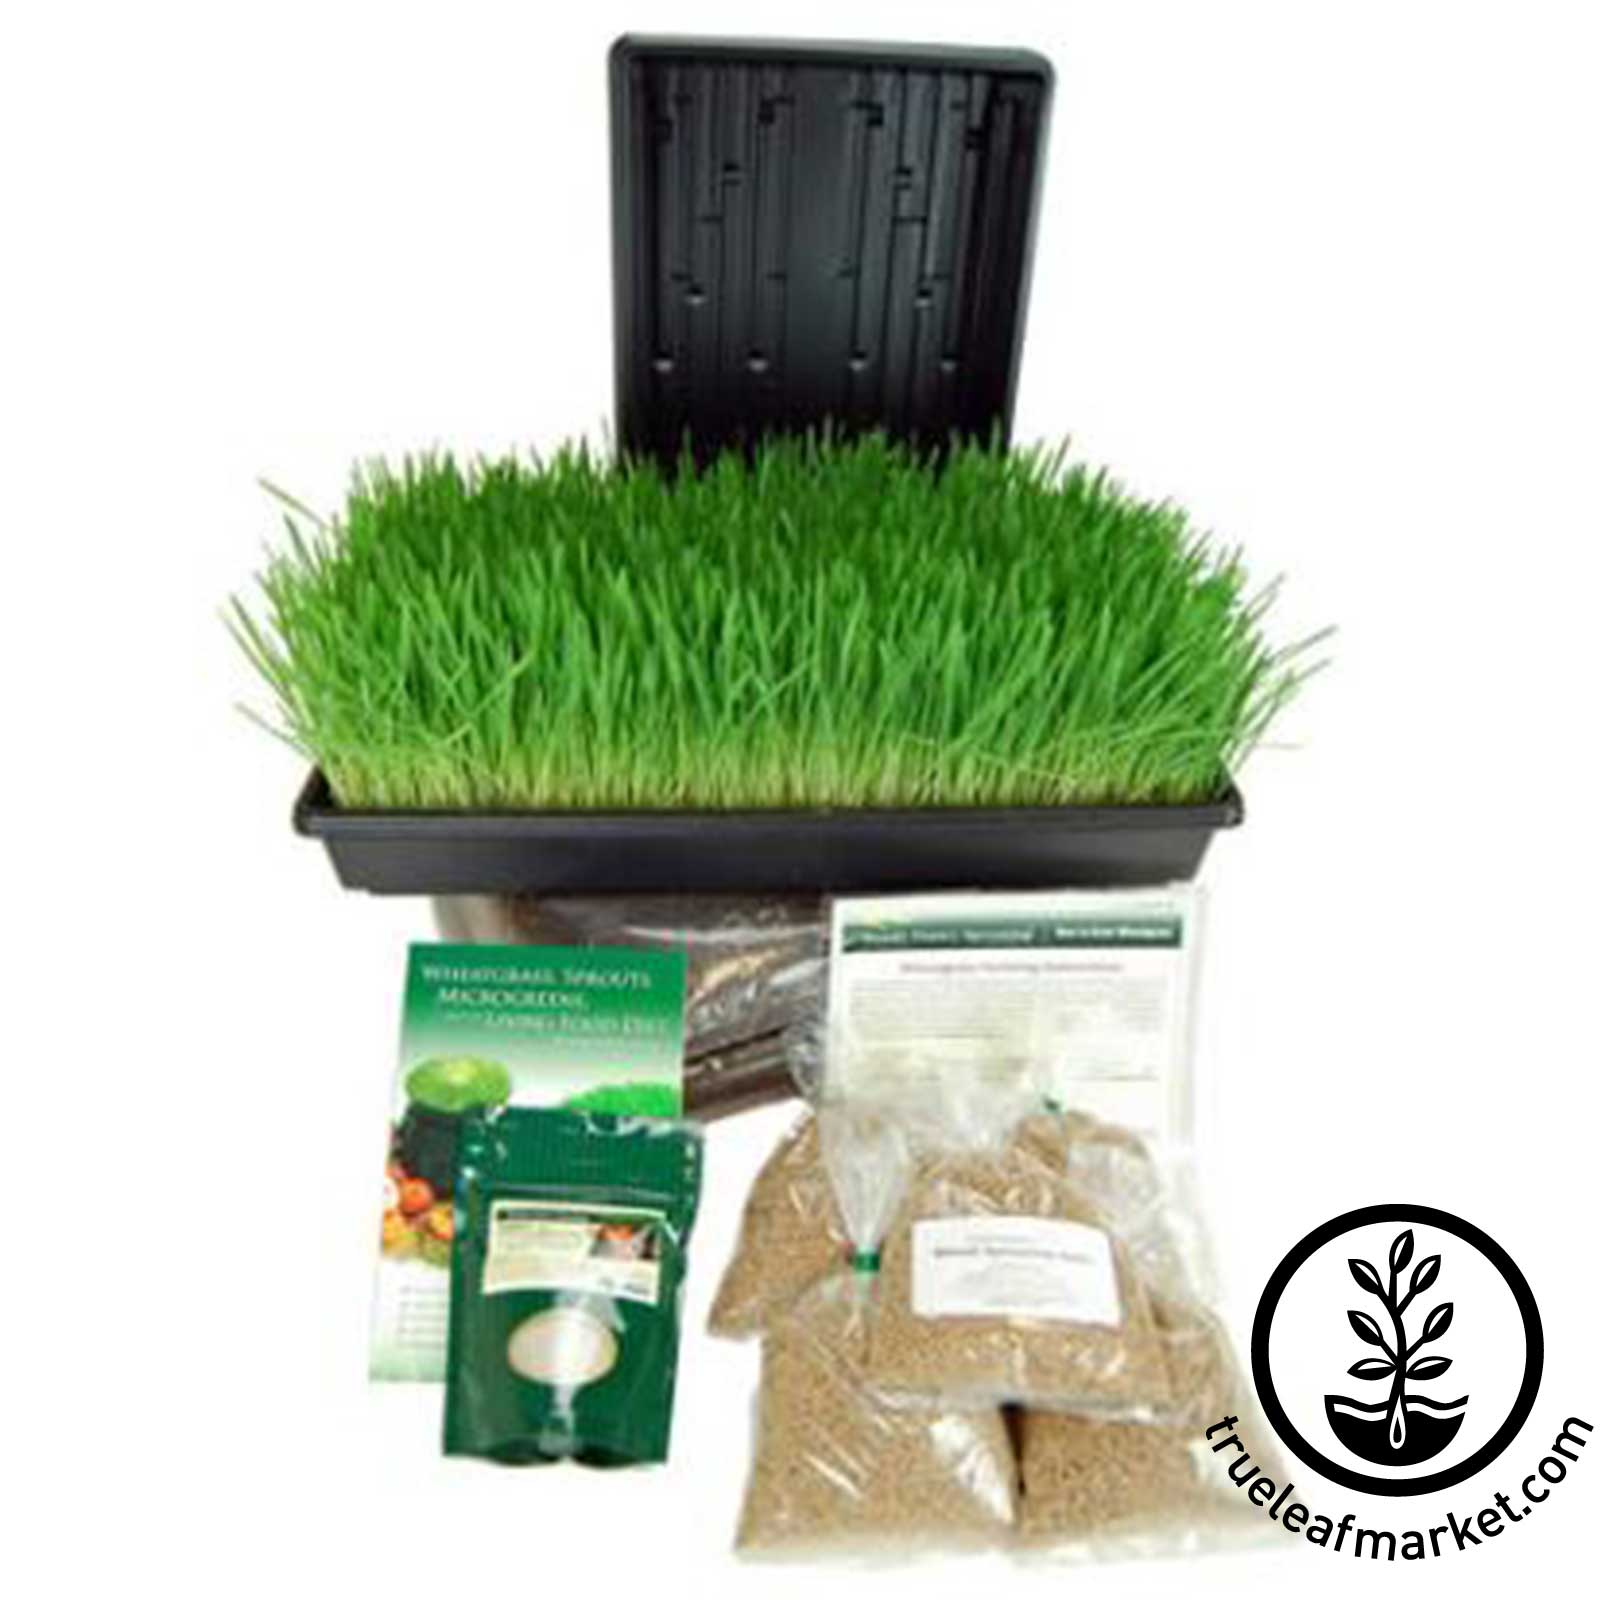 Barleygrass Growing Kit